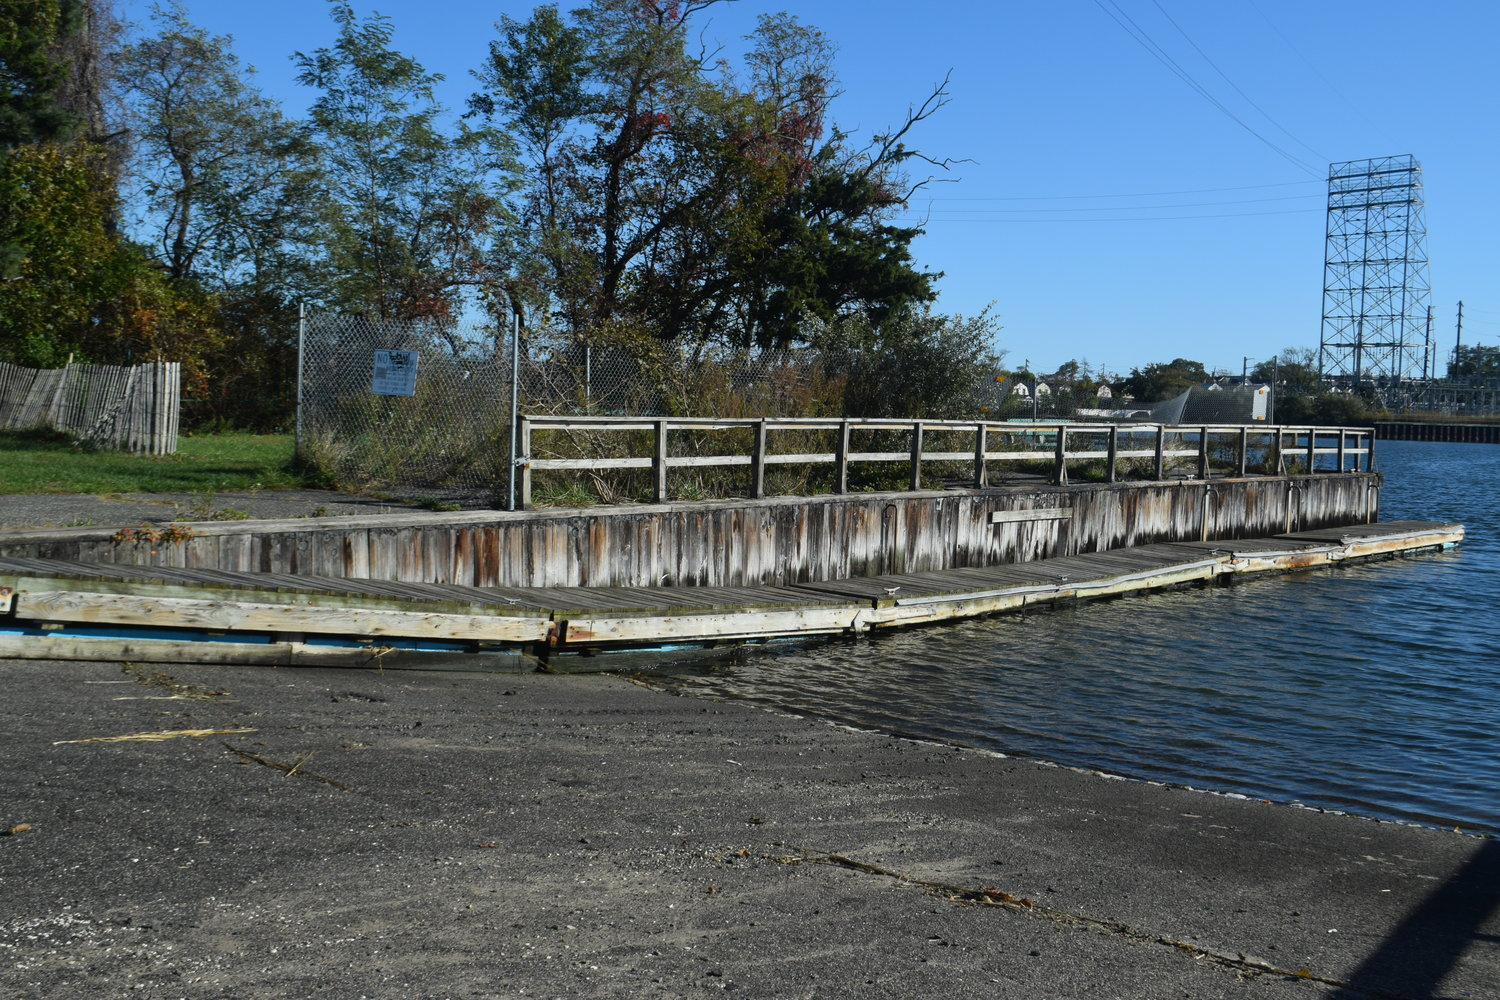 The dilapidated floating dock at Inwood Park's boat launch that is planned to be replaced as part of a $2.7 million project that is expected to begin in January.